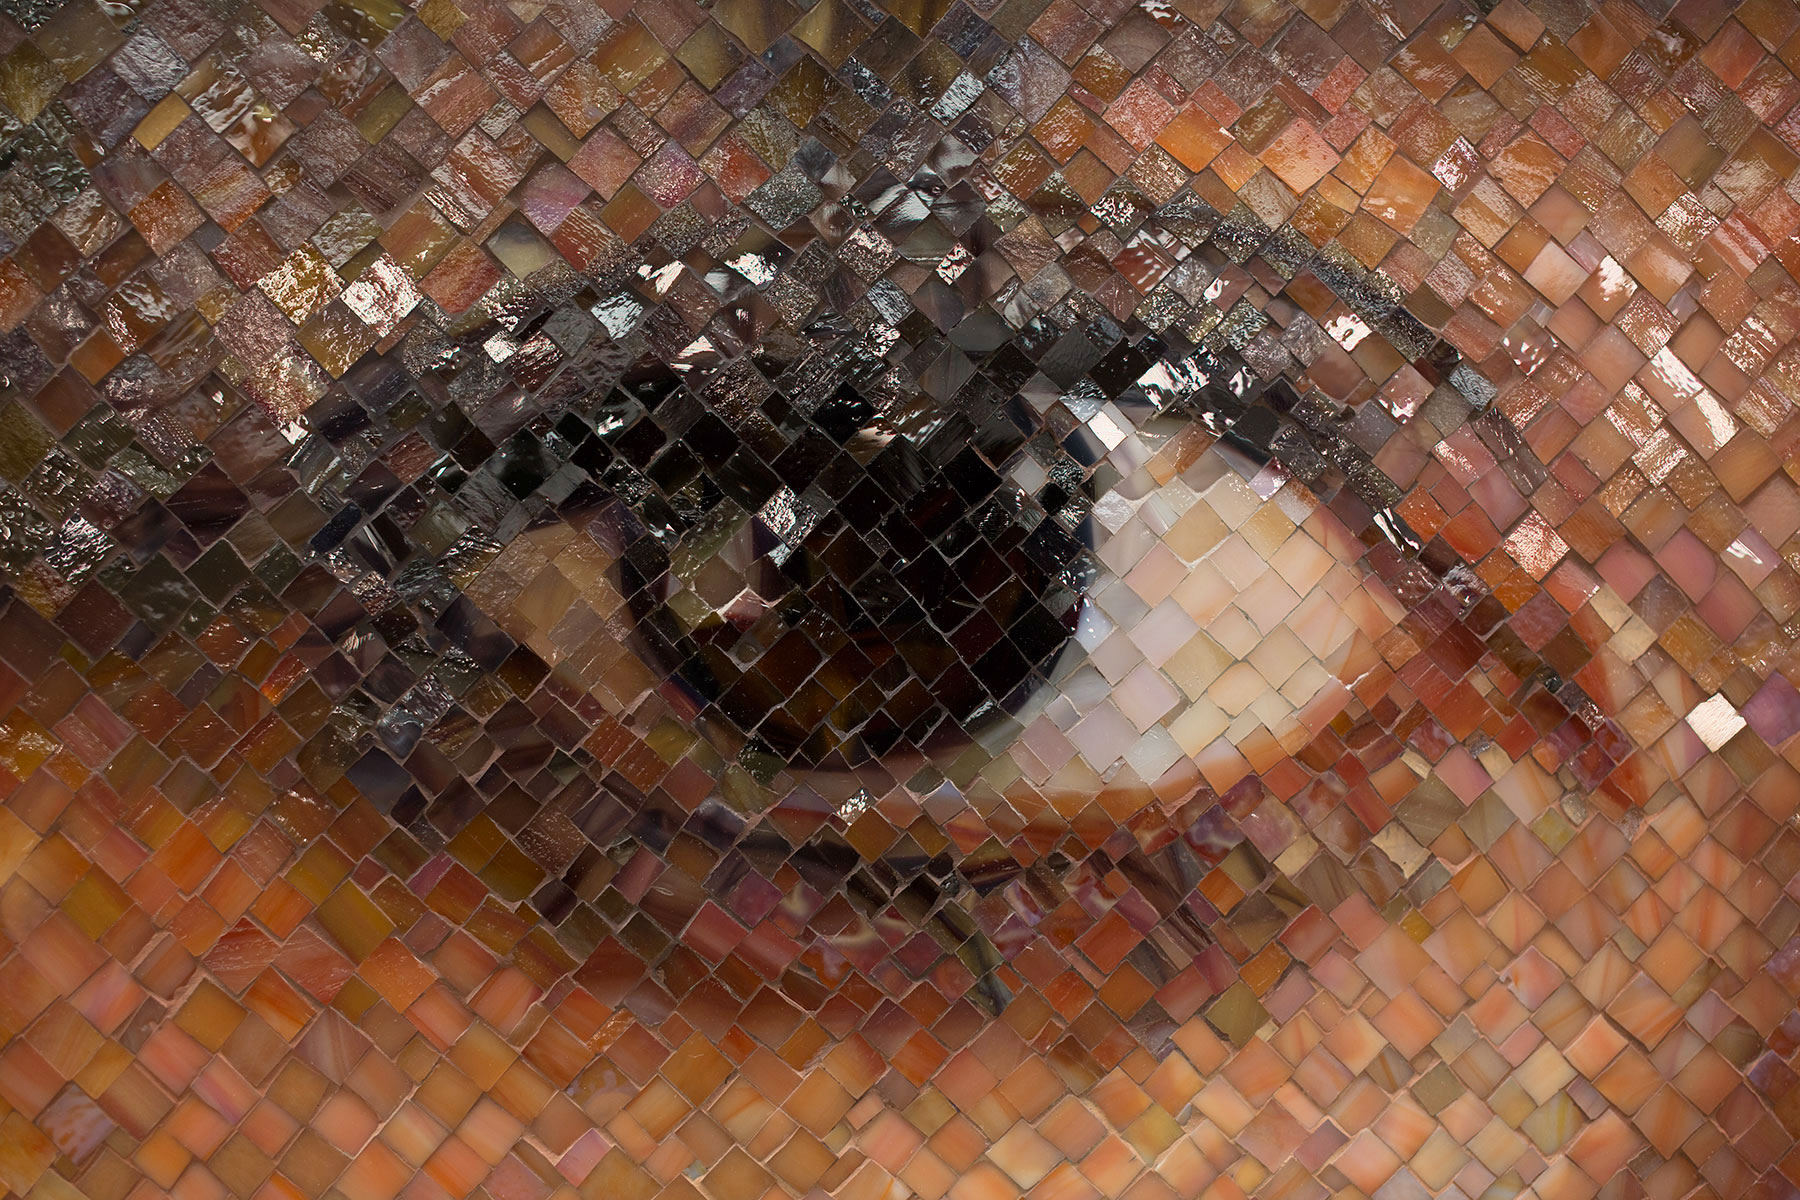 Sienna_Chuck Close Subway Portraits detail